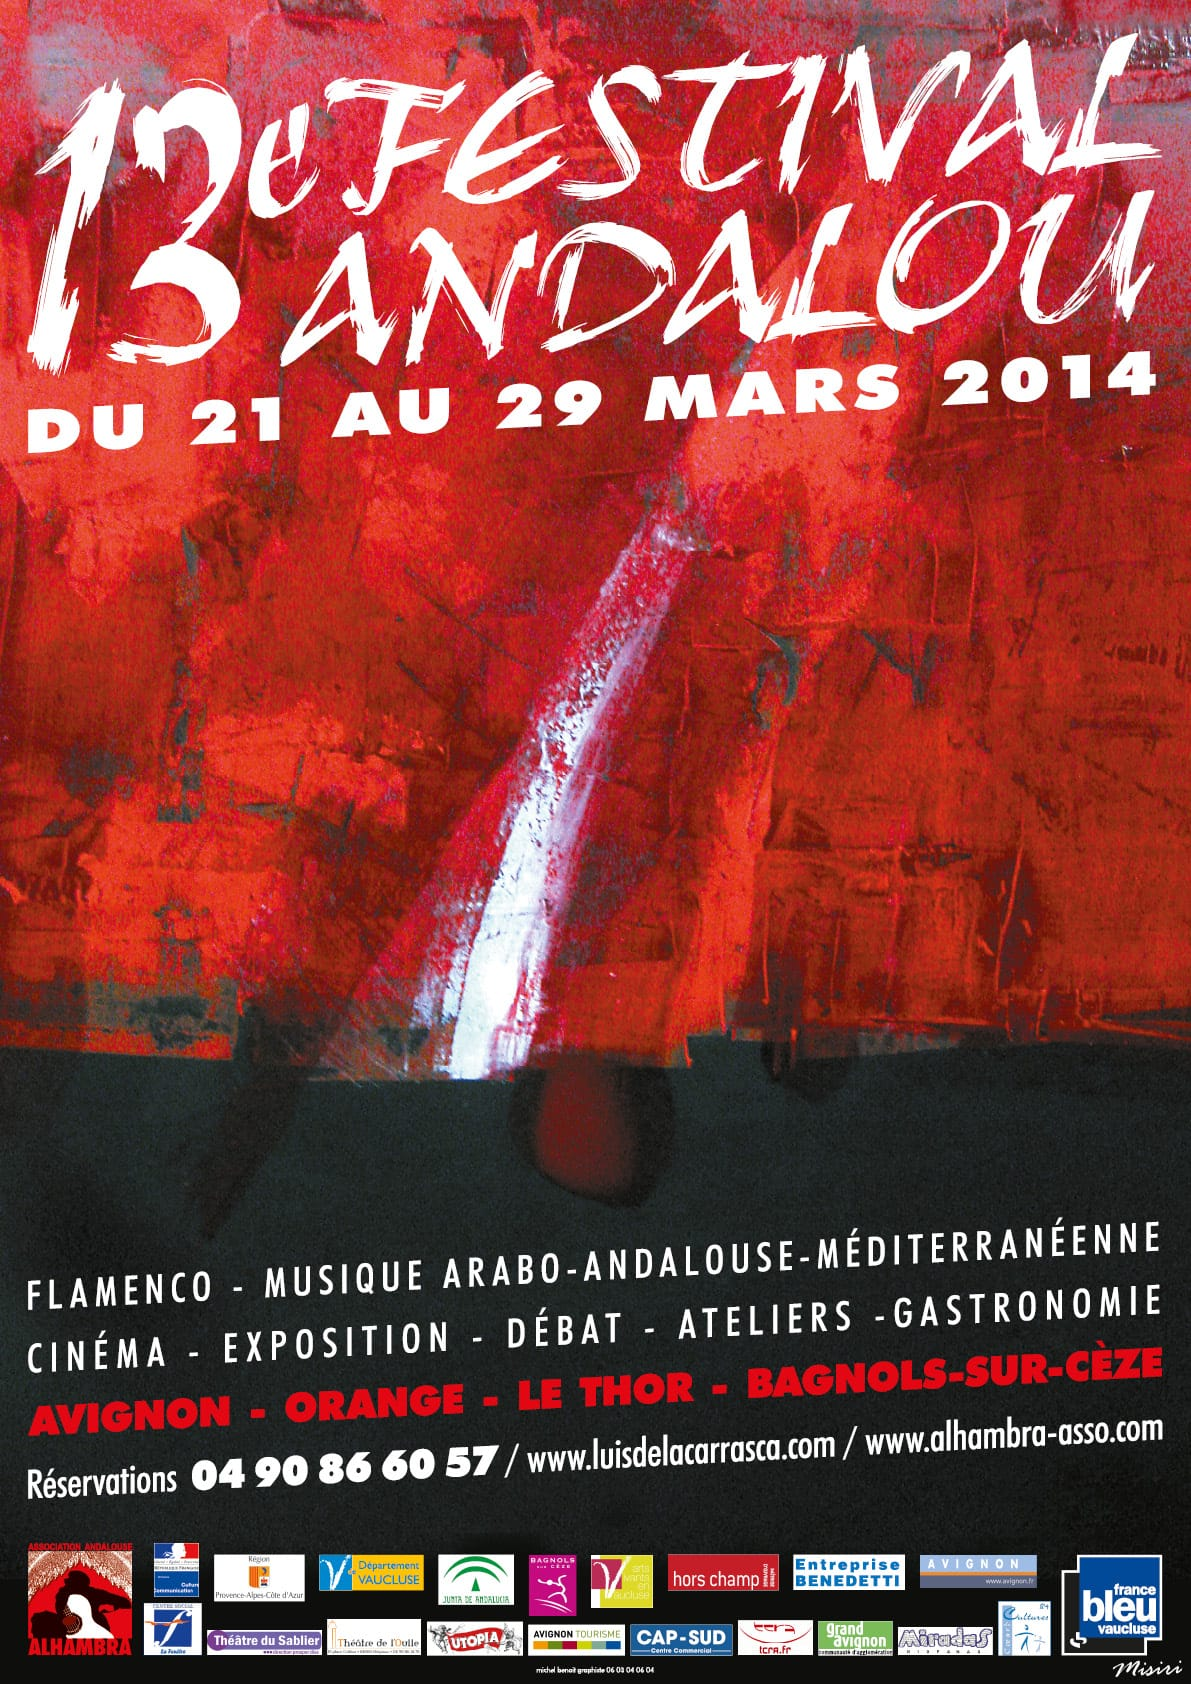 Festival Andalou - 13th edition